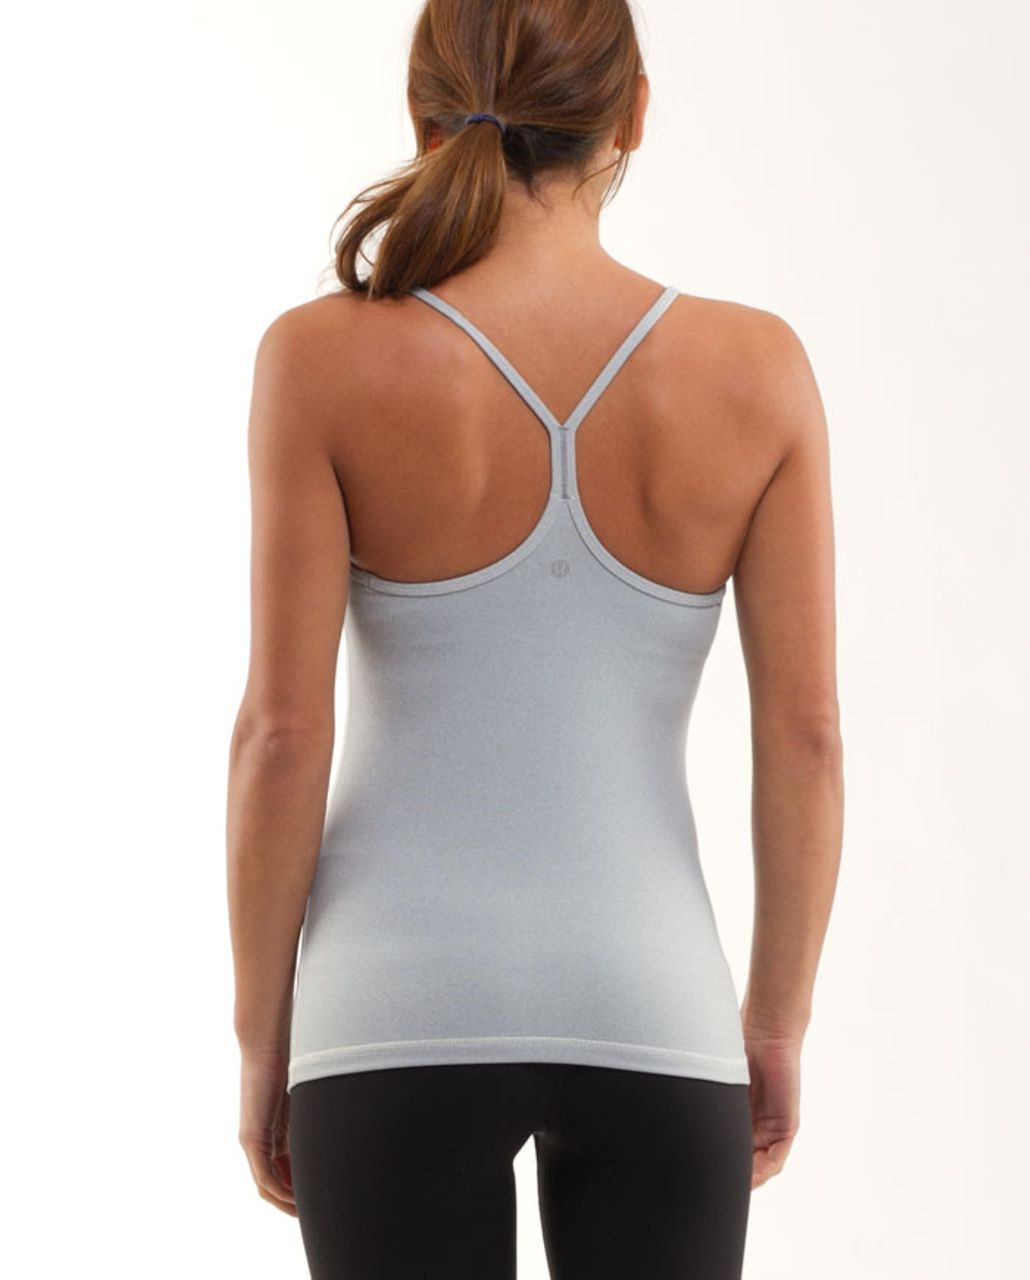 Lululemon Power Y Tank - Ghost Blurred Grey Mini Stripe